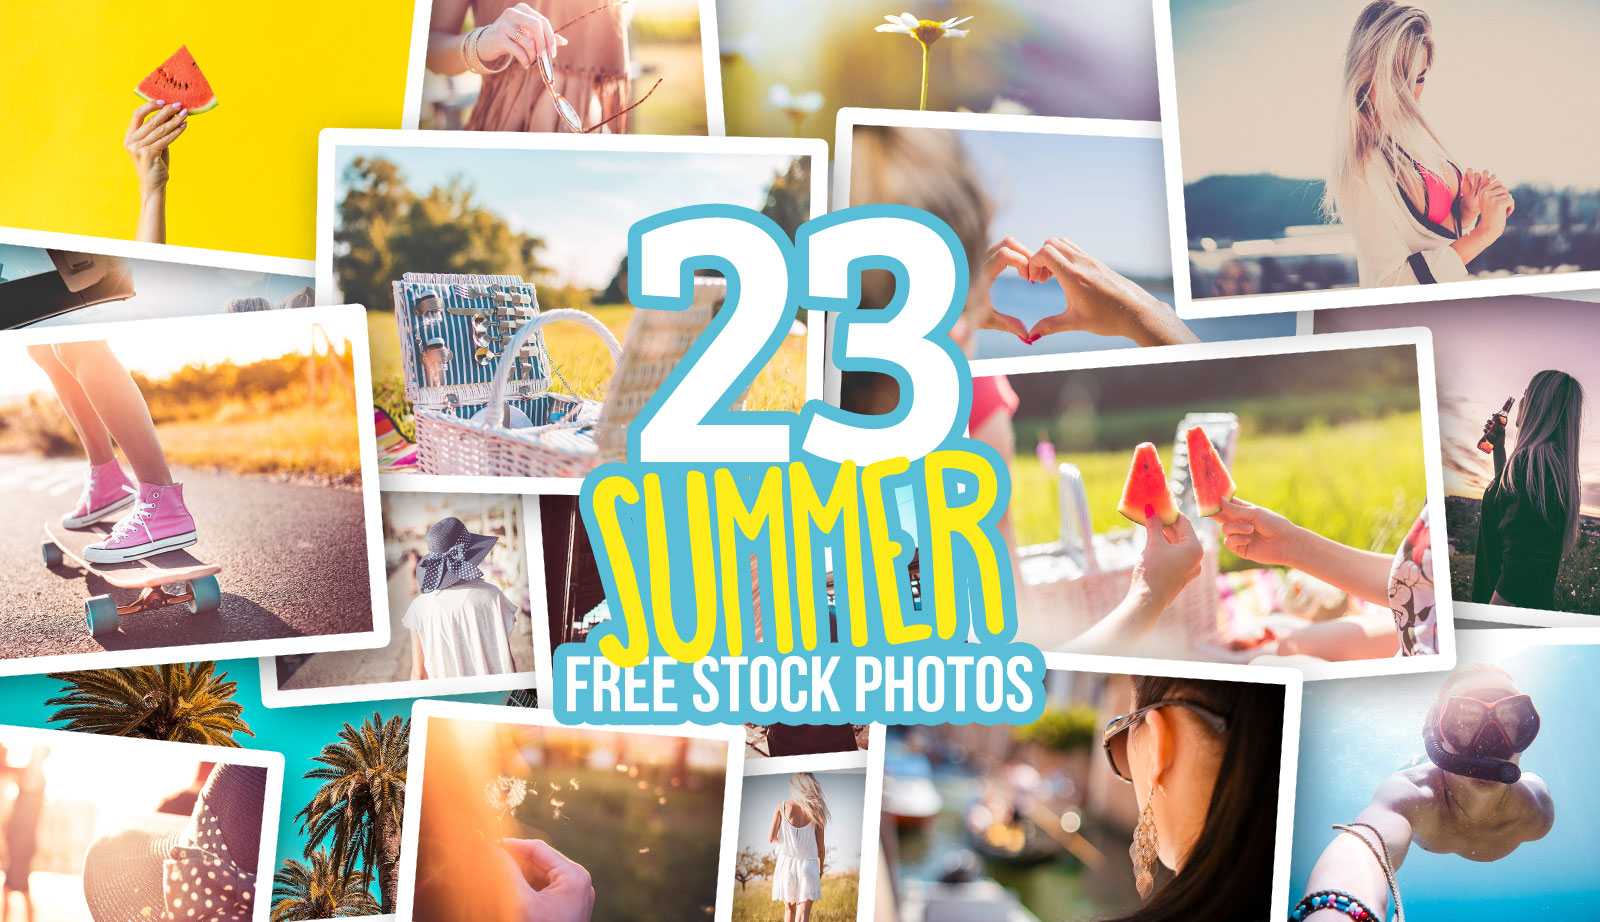 picjumbo BLOG: 23 Beautiful FREE Stock Photos of Summer You Shouldn't Miss